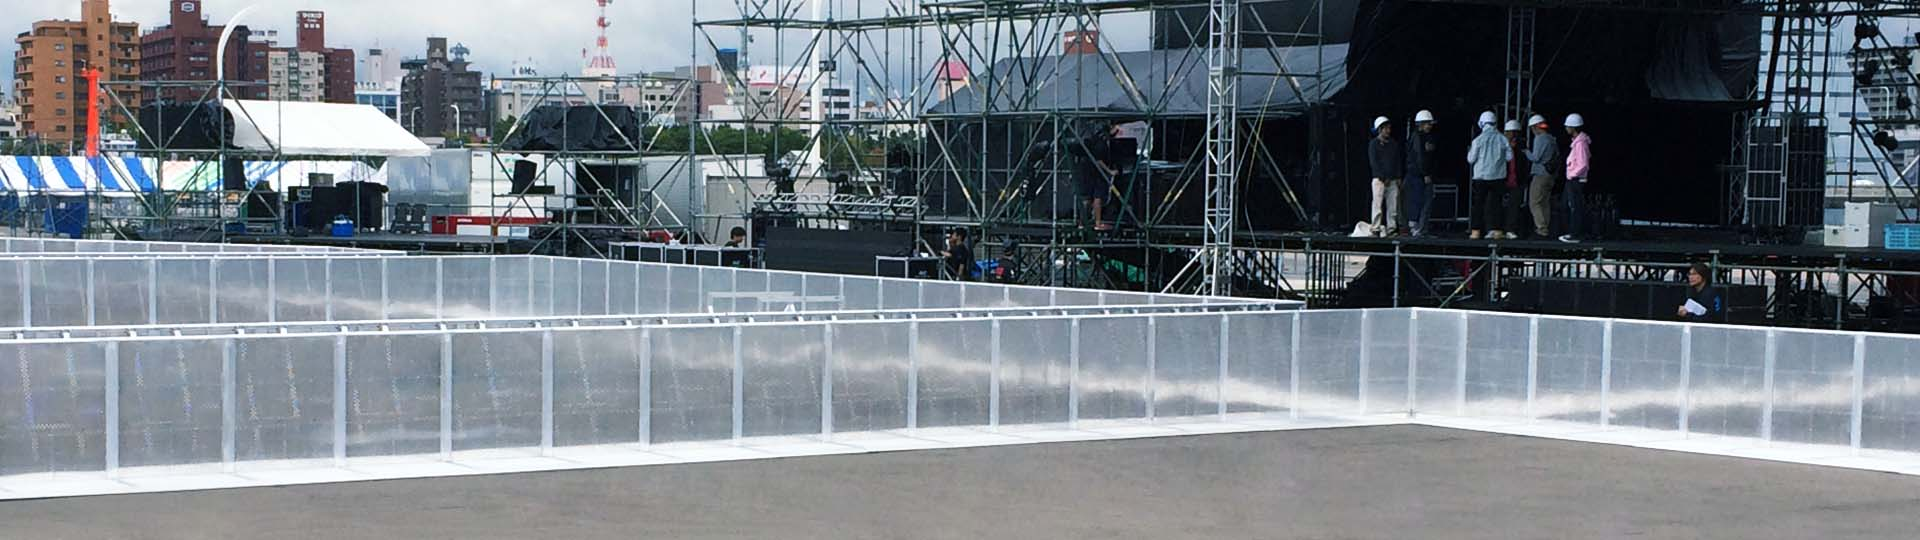 Concert Barrier & Road Barrier Project Shows